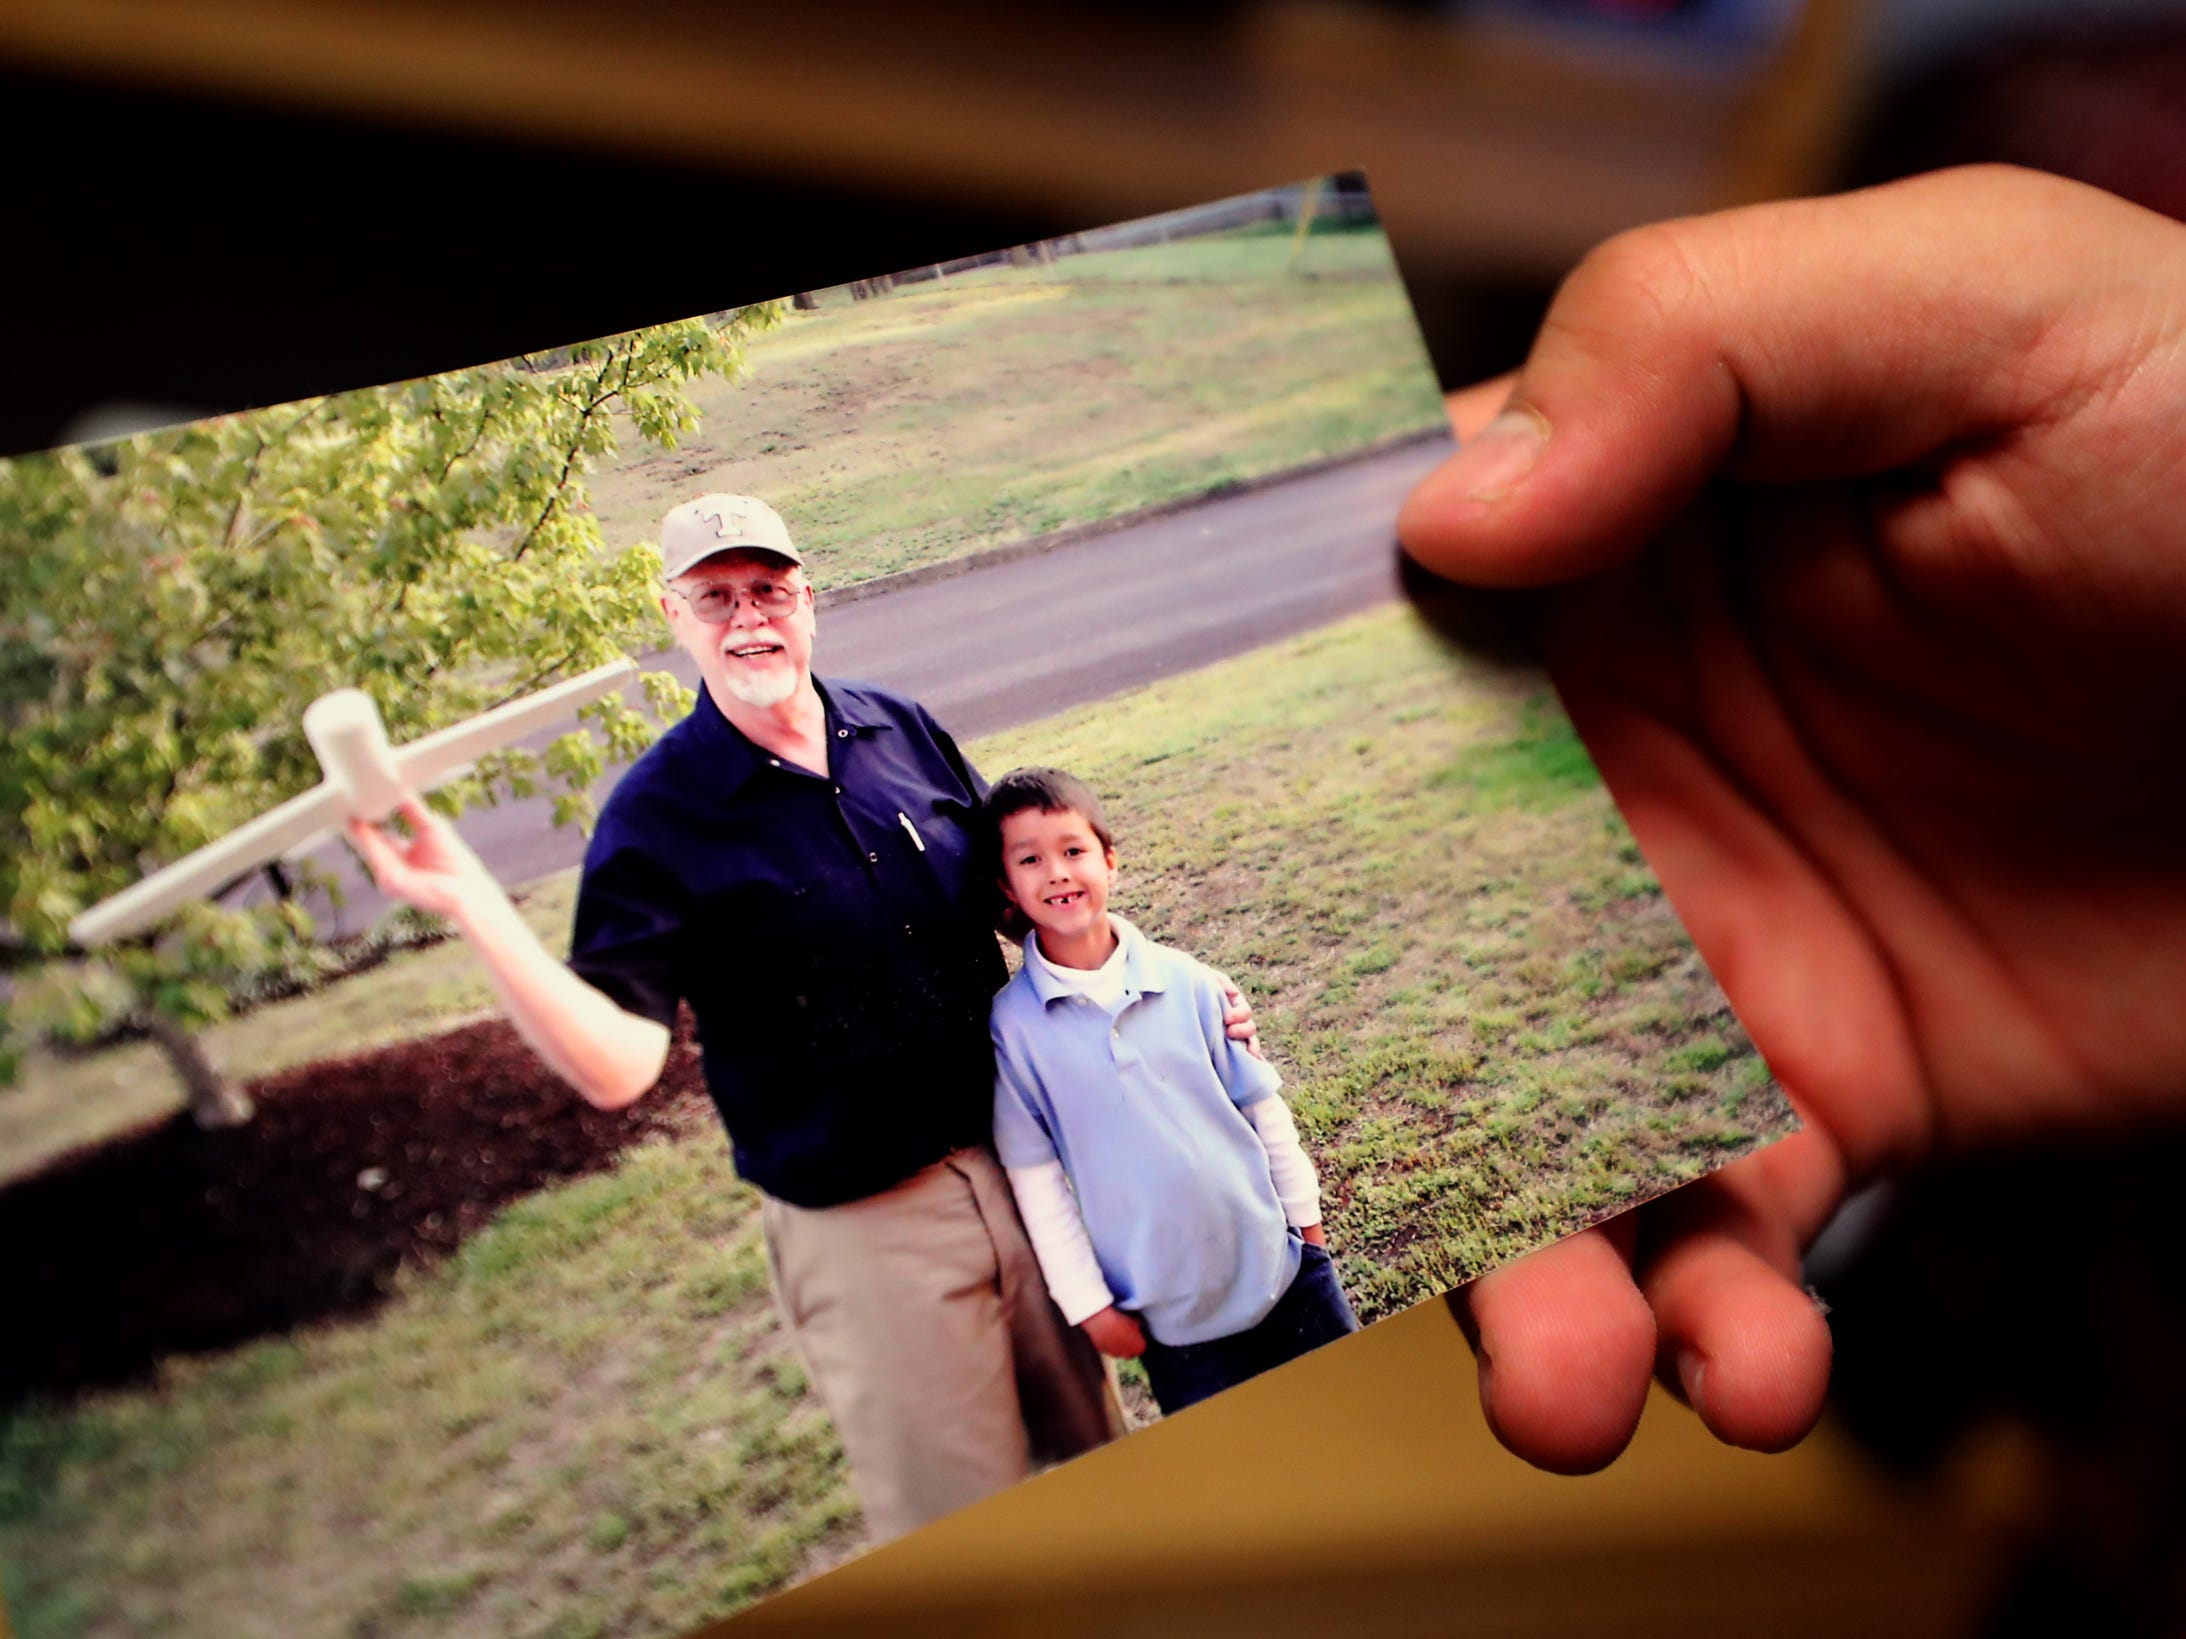 Isaac Plata, an MTSU freshman, holds a picture of himself at about 7 years old with his grandfather Gordon Meis. During some difficult times Plata would live with his grandparents.